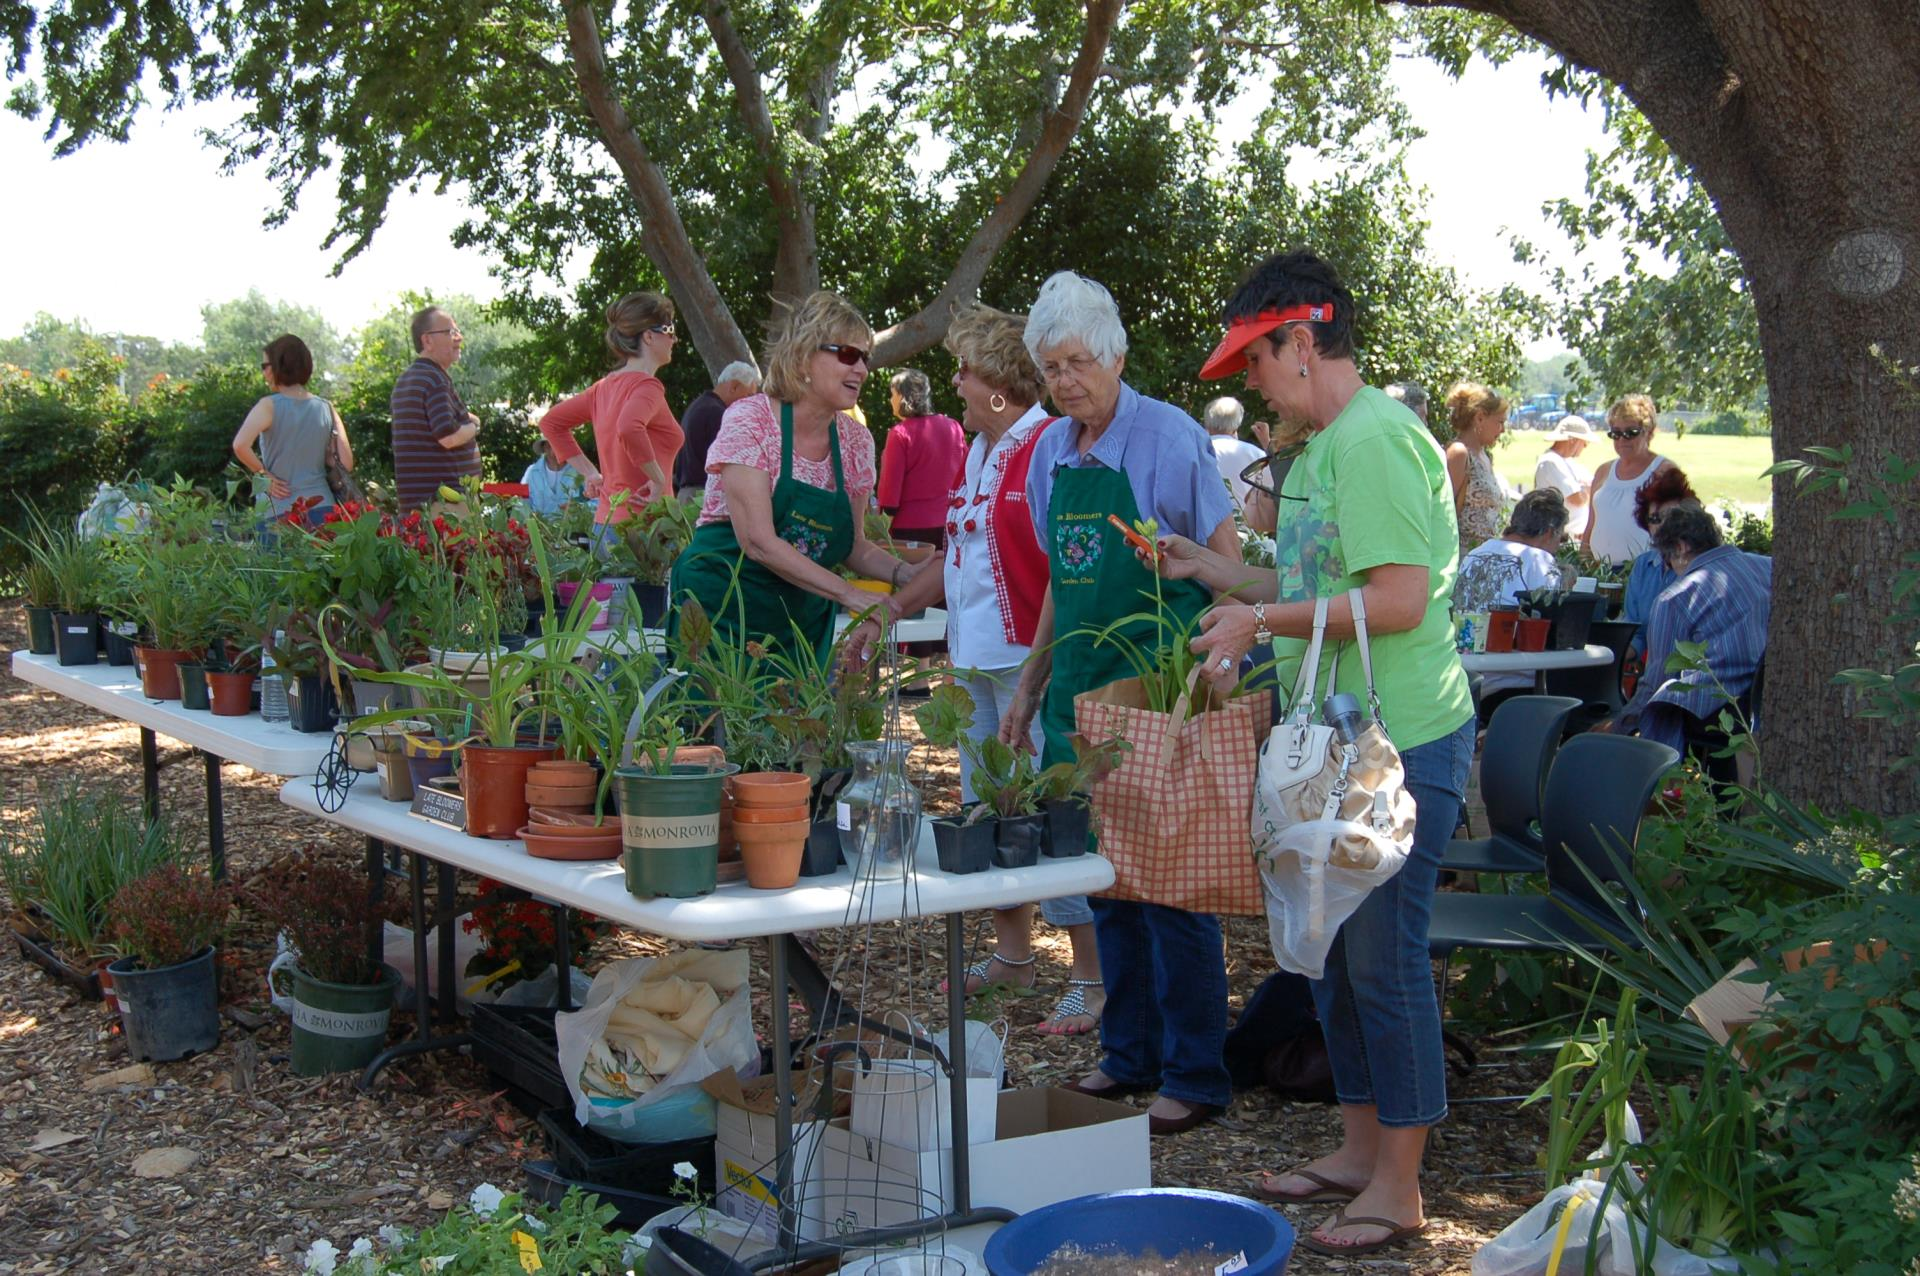 Visitors look at plants during Festival in the Park